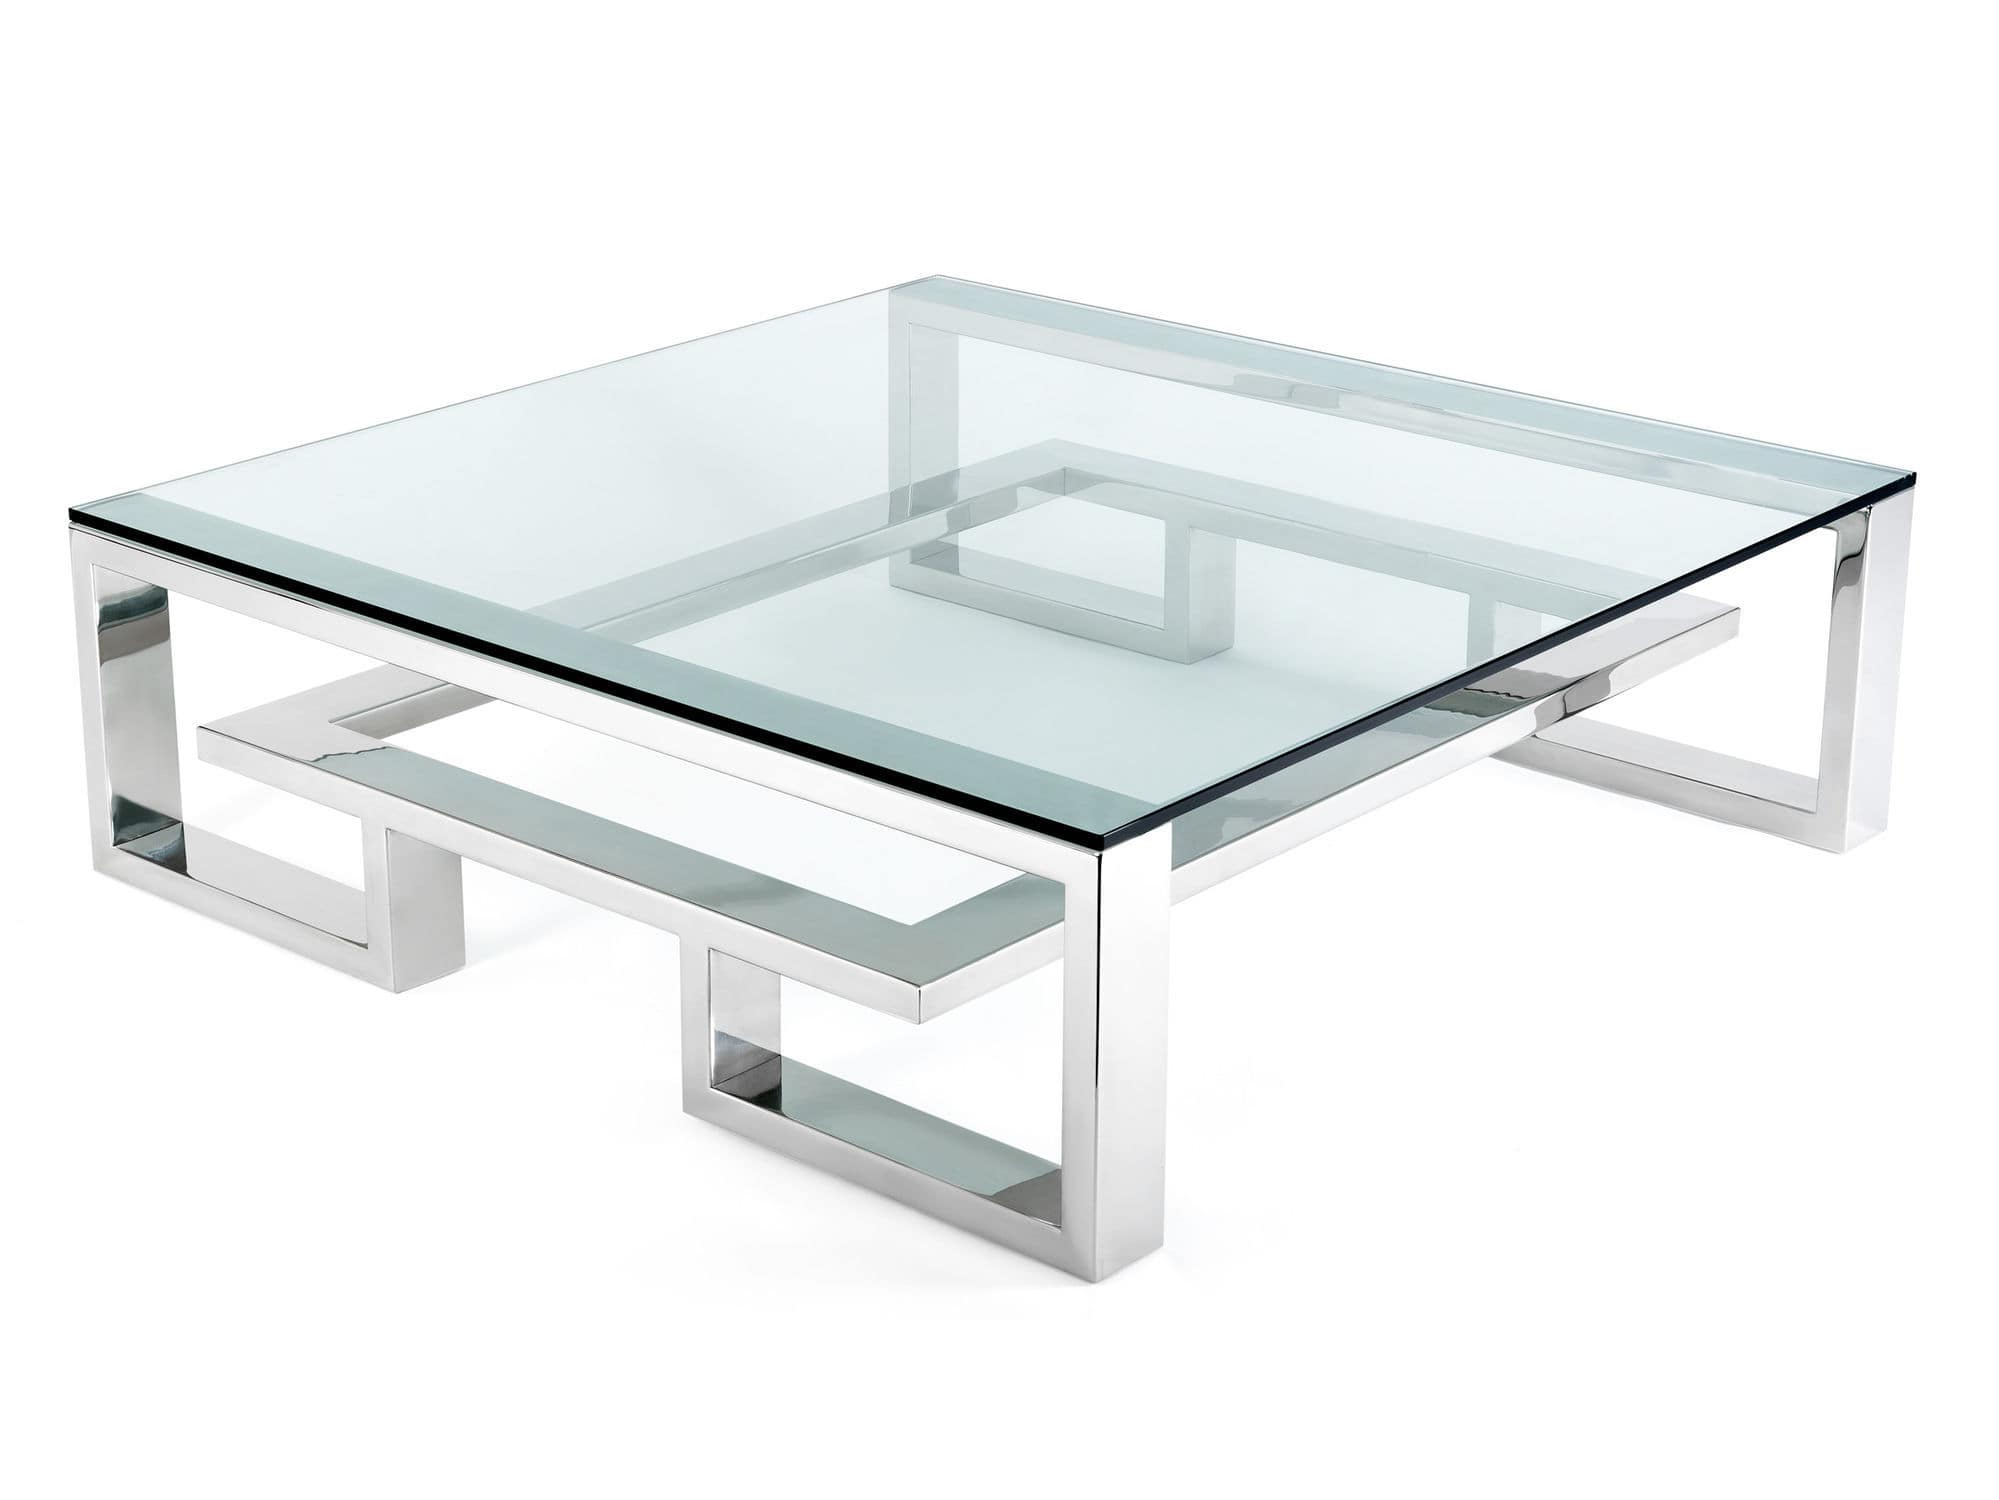 Table basse verre et metal noir 17 id es de d coration for Table basse verre metal